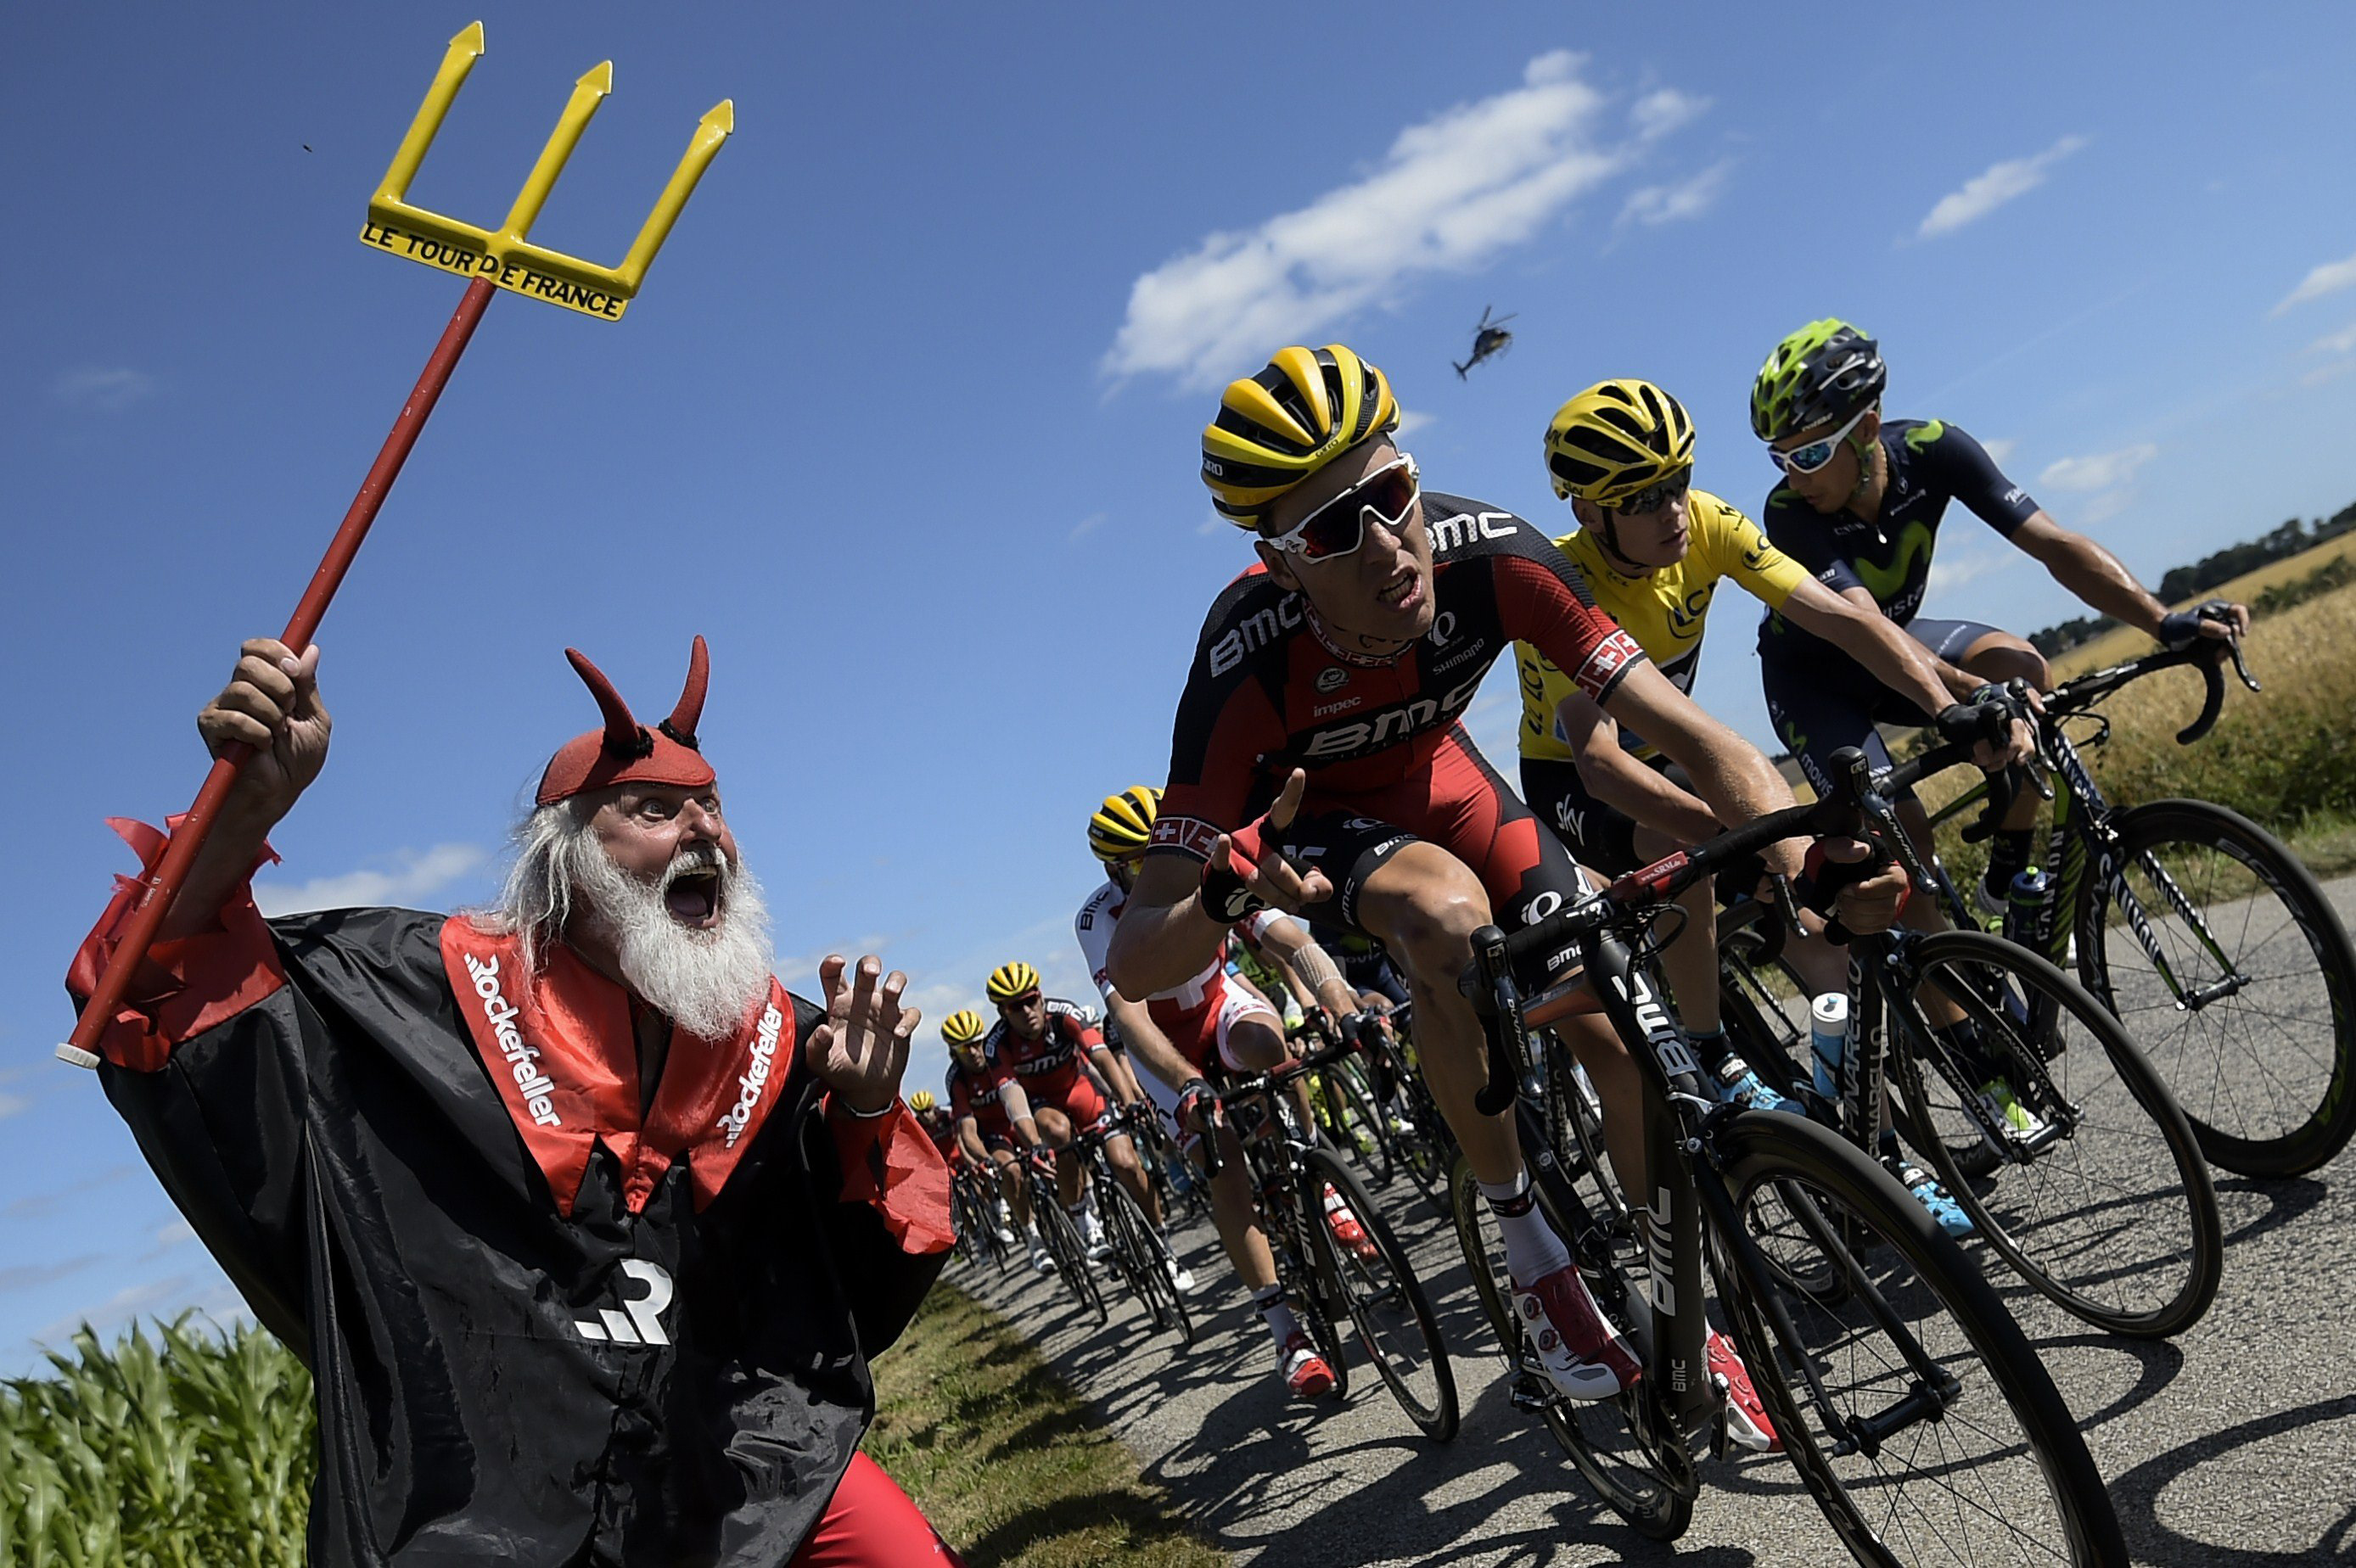 German supporter Didi Senft known as El Diablo cheers as Great Britain's Christopher Froome (in yellow) rides in the pack during the eighth stage of the race on July 11, 2015, between Rennes and Mur-de-Bretagne, western France.